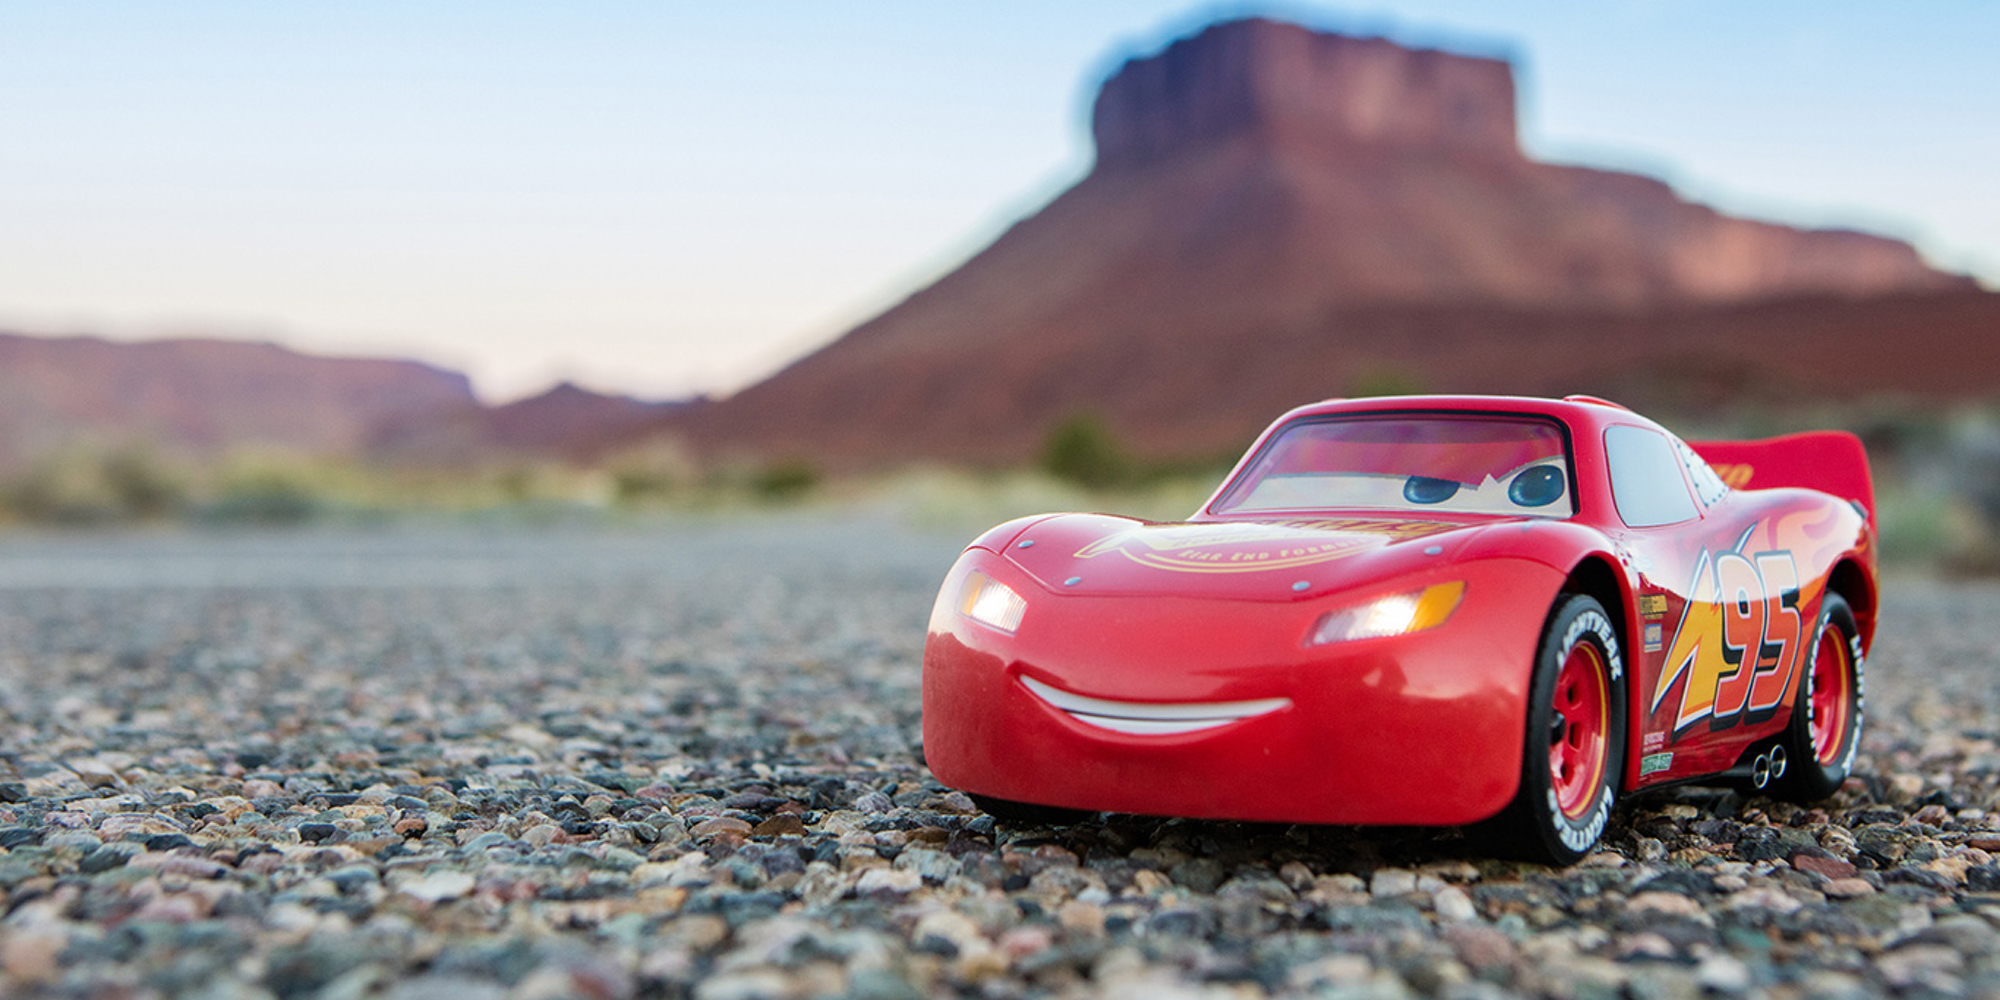 Off Road Lightning Mcqueen Bring Home The Iphone Controlled Sphero Lighting Mcqueen For